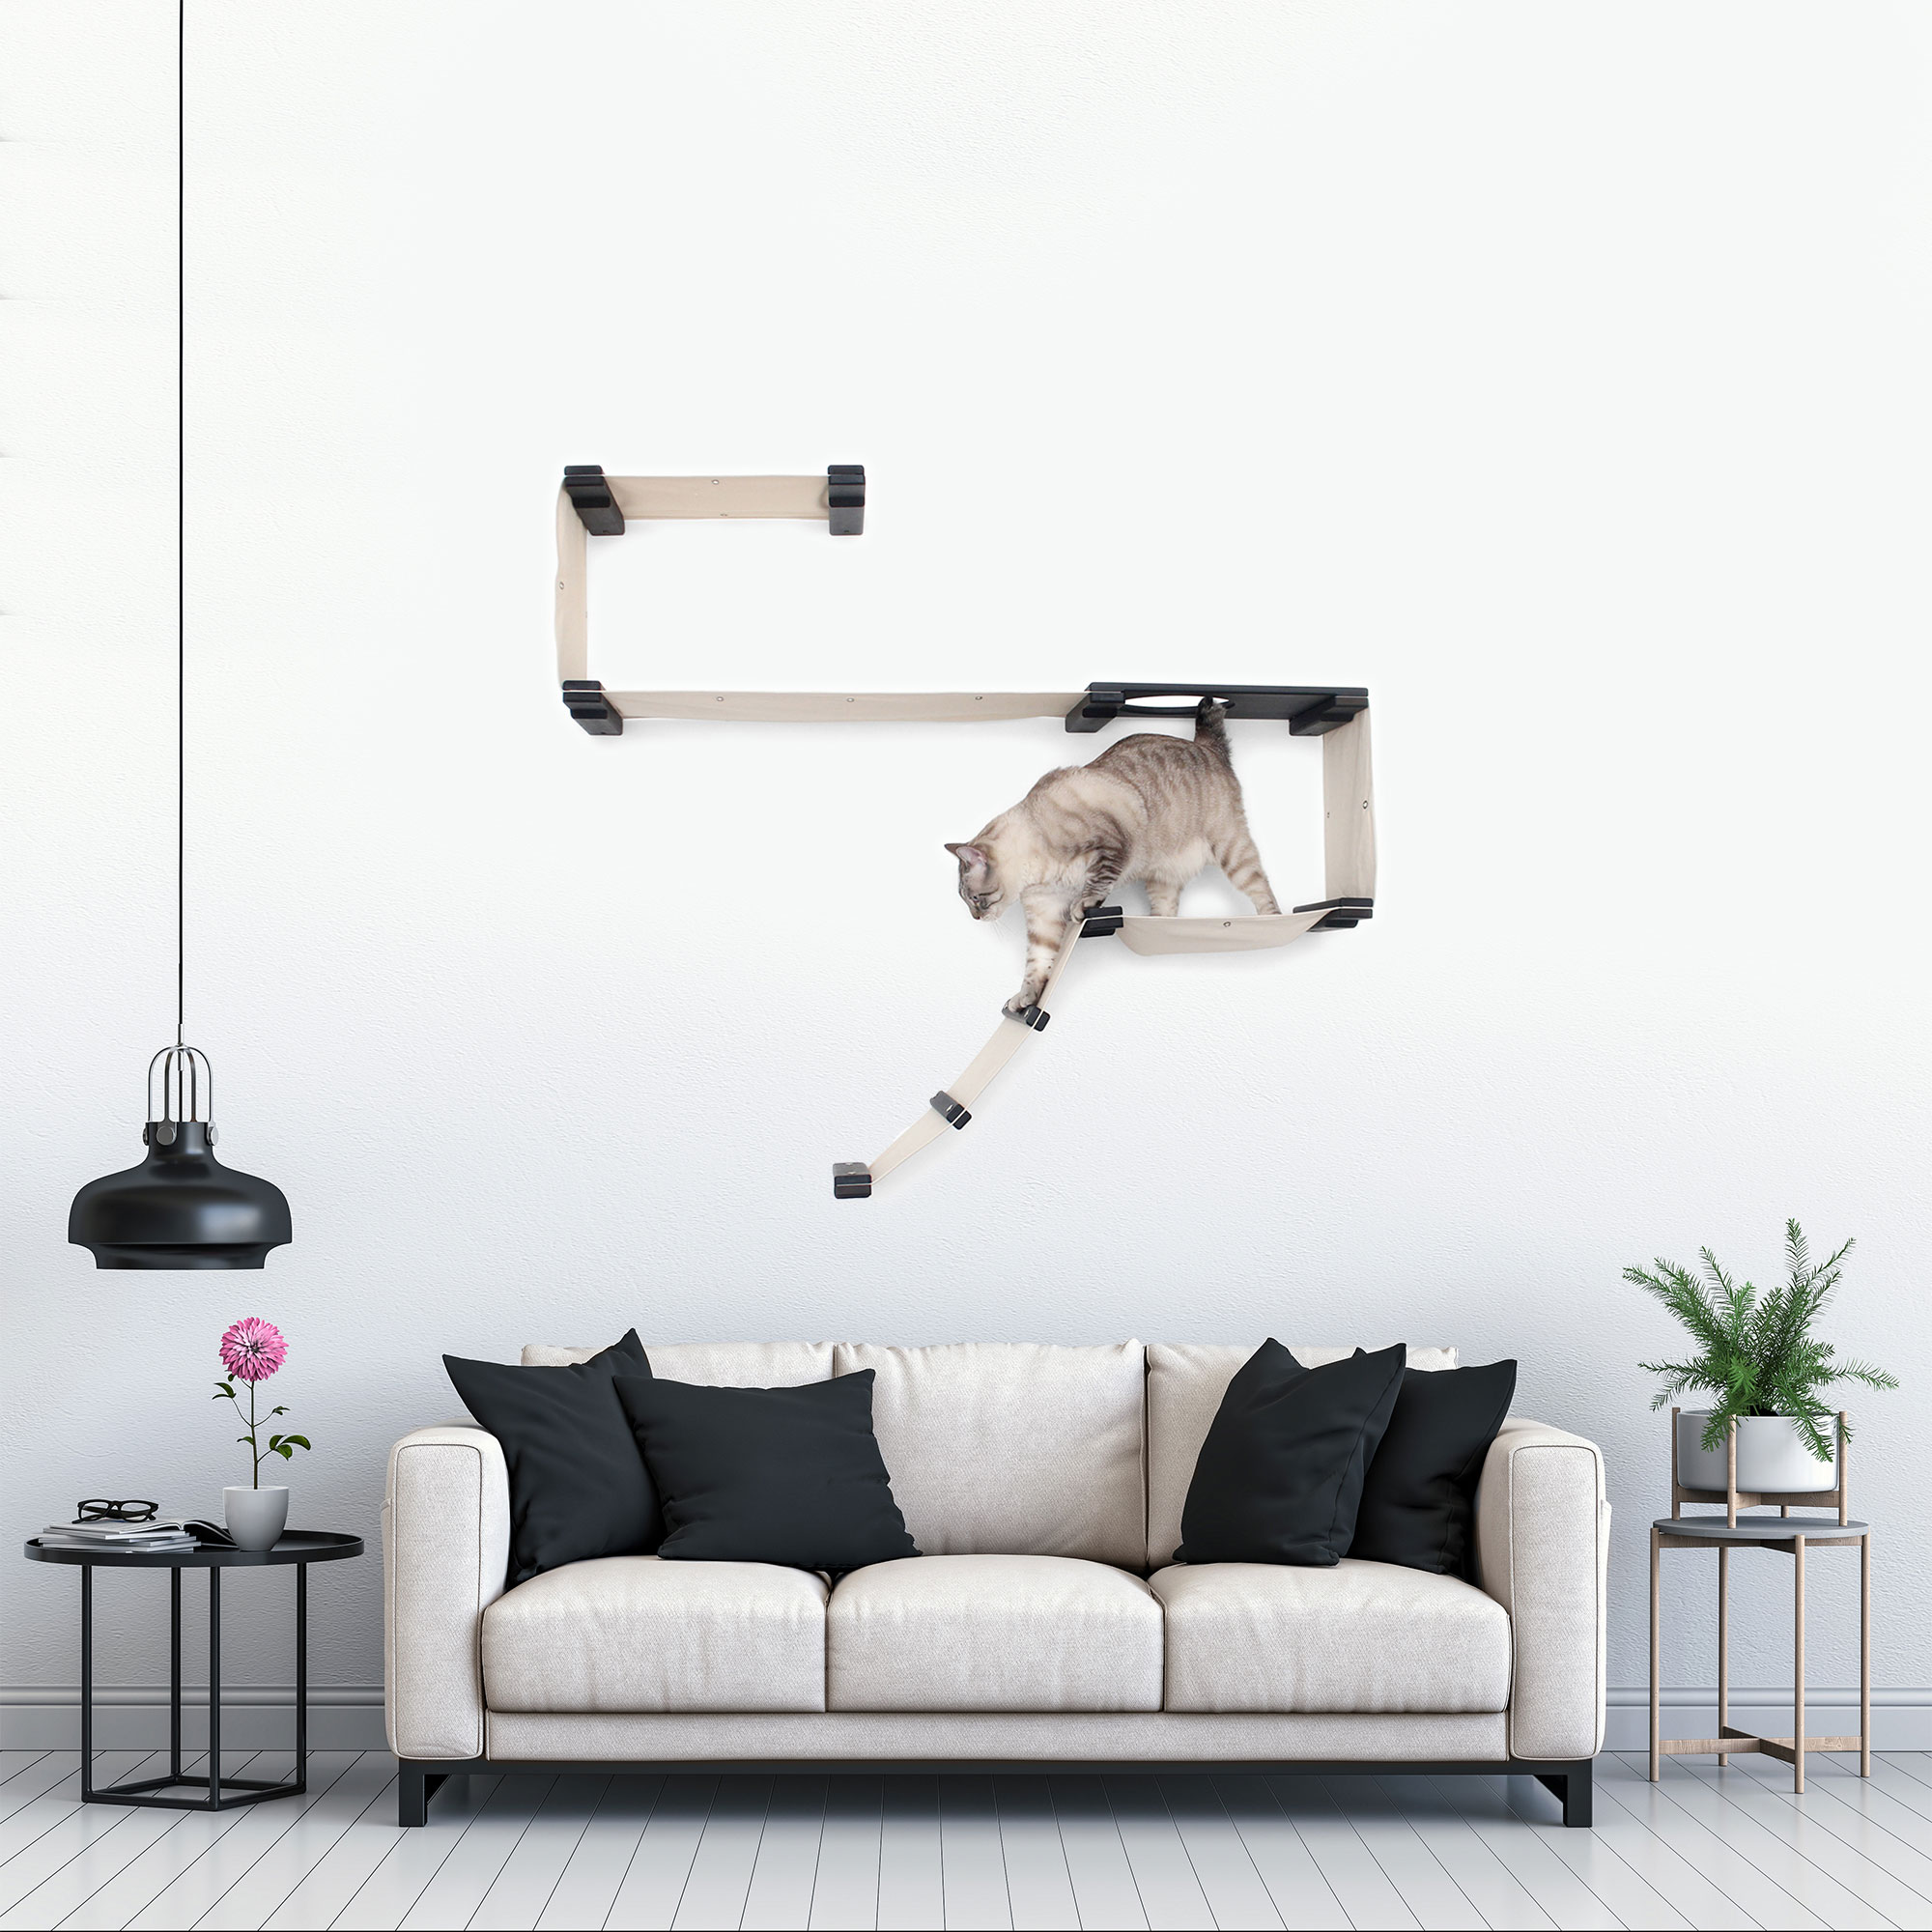 This photo displays our cat on a Play complex mounted in a living room setting. This image shows the Play complex in Onyx, a black stain, and has Natural fabric, a light tan color.